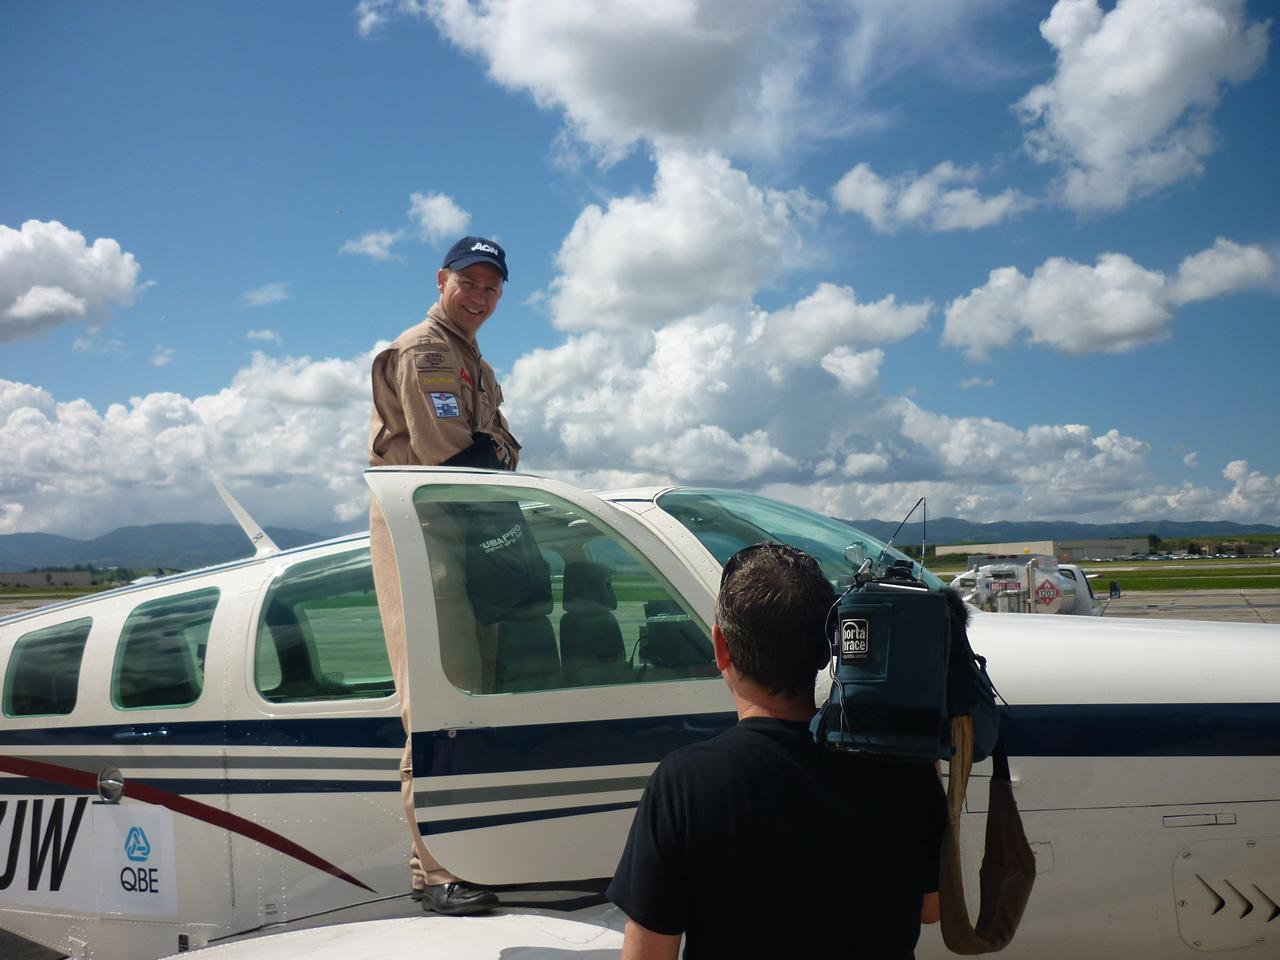 Pilot Jeremy Rowsell will be attempting the flight – but not in the aircraft pictured